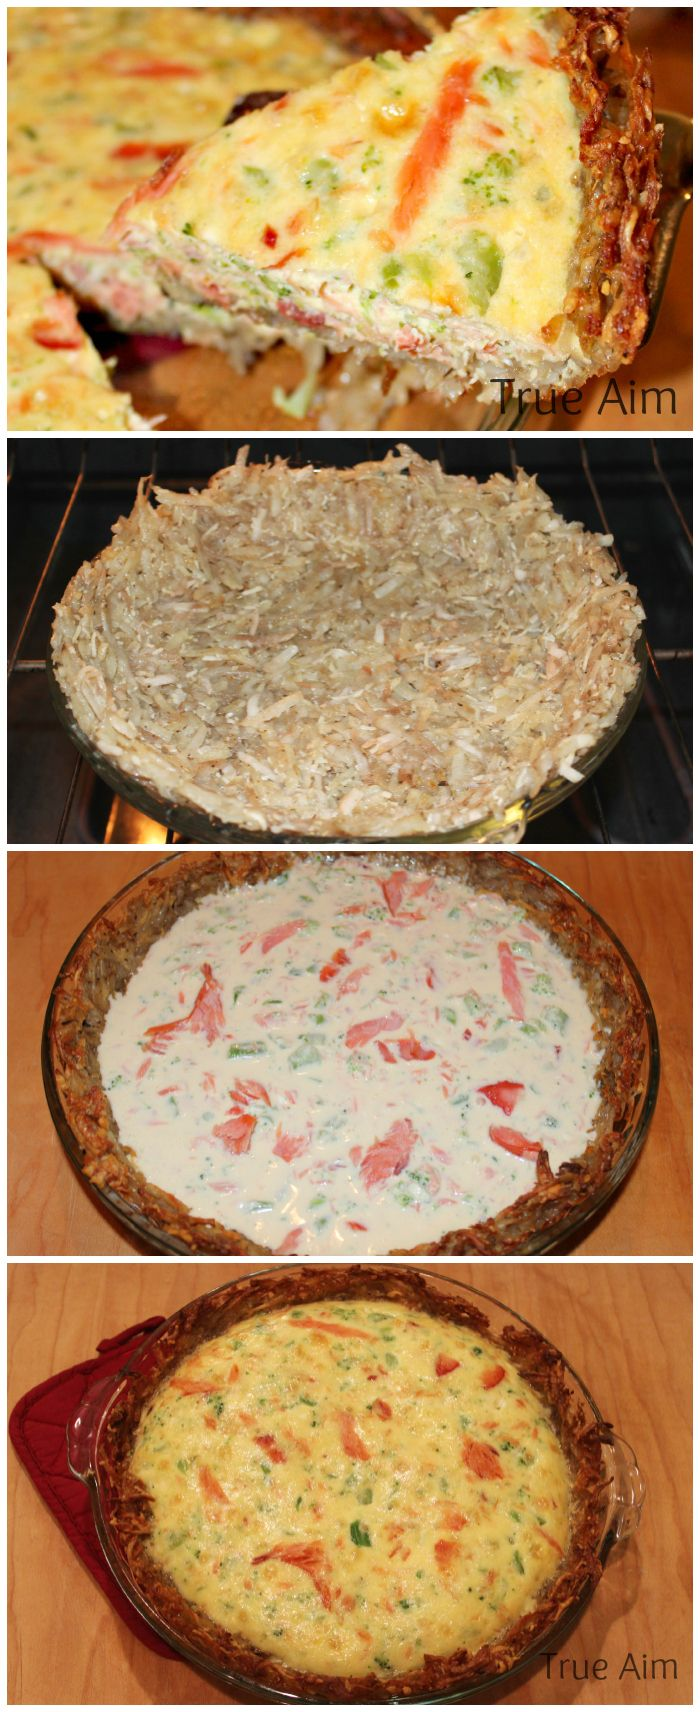 Homemade Smoked Salmon Quiche with a Crispy Potato Crust - AMAZING! I could eat the whole thing myself.